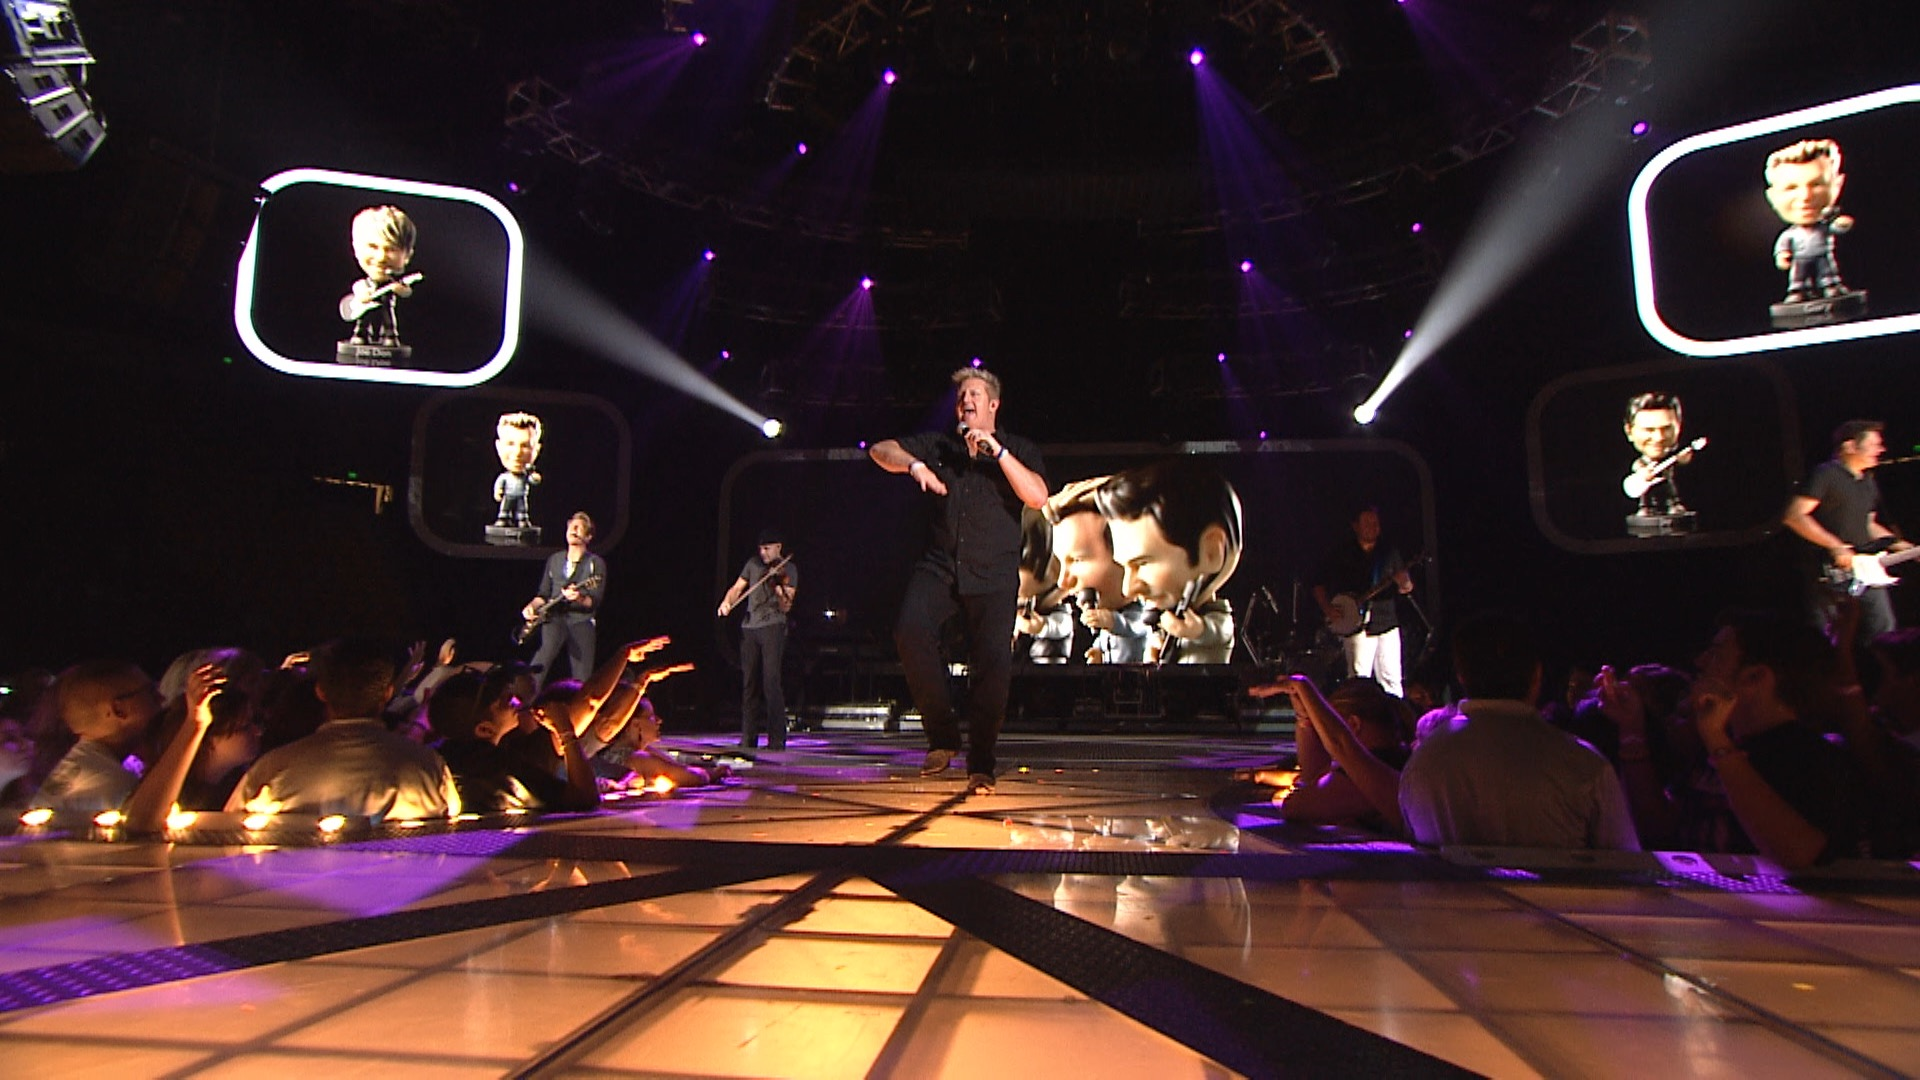 Rascal Flatts performing live, with Bobble Head graphics.